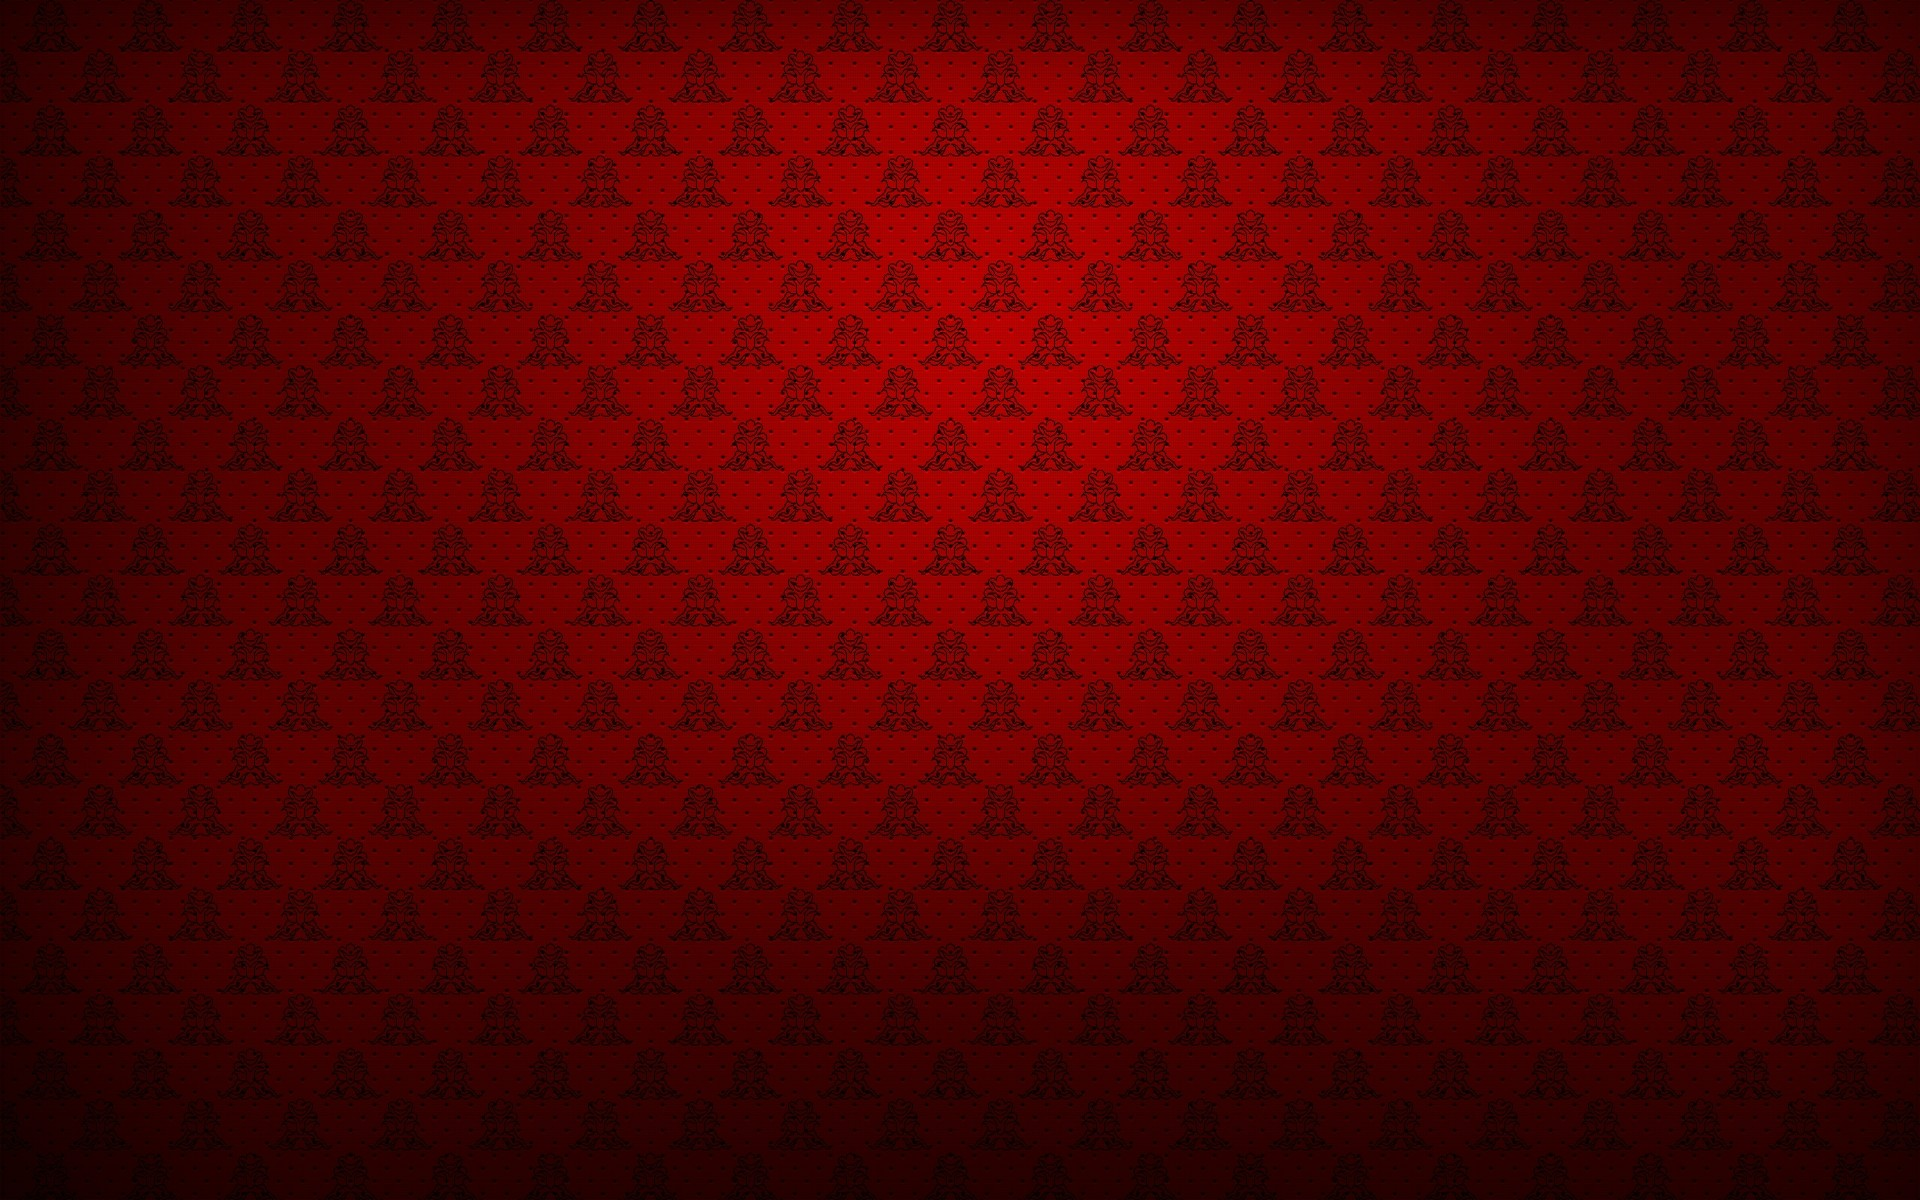 Red Patterns Wallpaper 1920x1200 Red Patterns Background 1920x1200